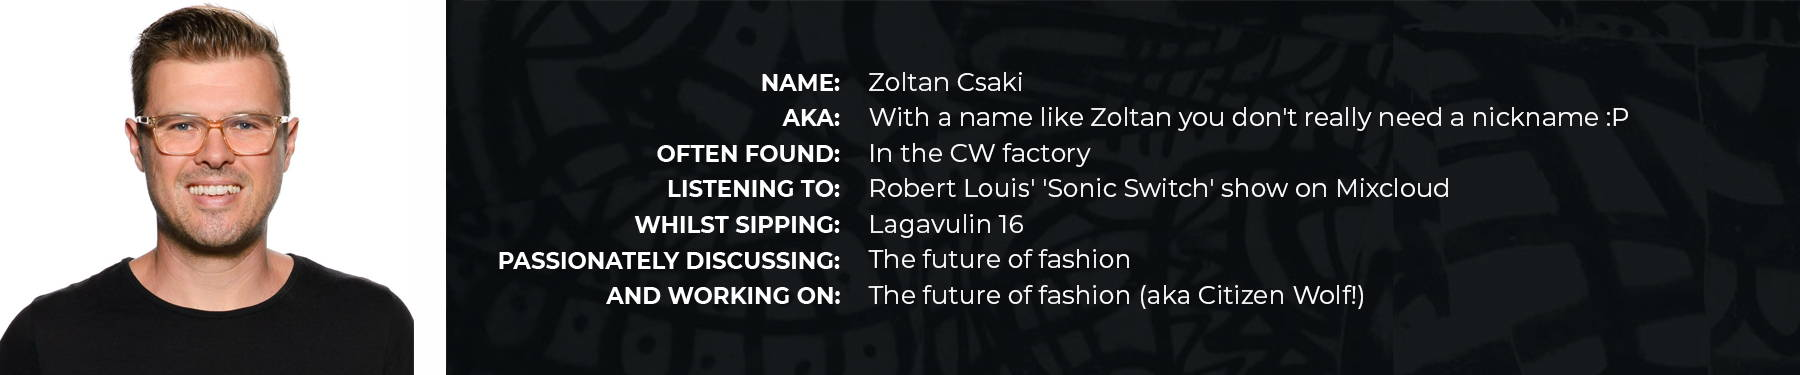 Spotlight on Zoltan Csaki of Citizen Wolf